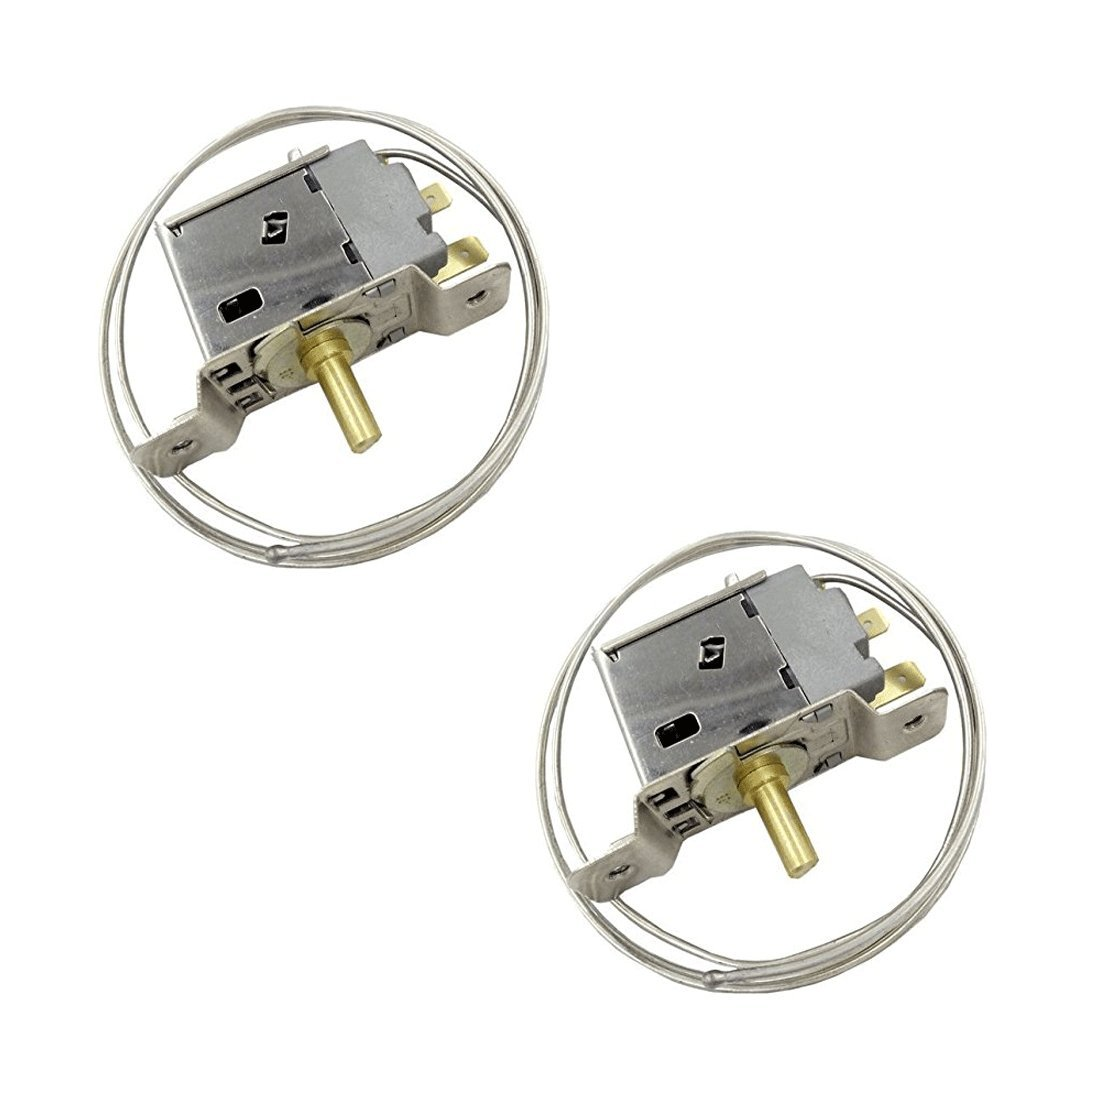 XMHF WPF-22 Universal Fridge Freezer Refrigerator Thermostat 2Pcs